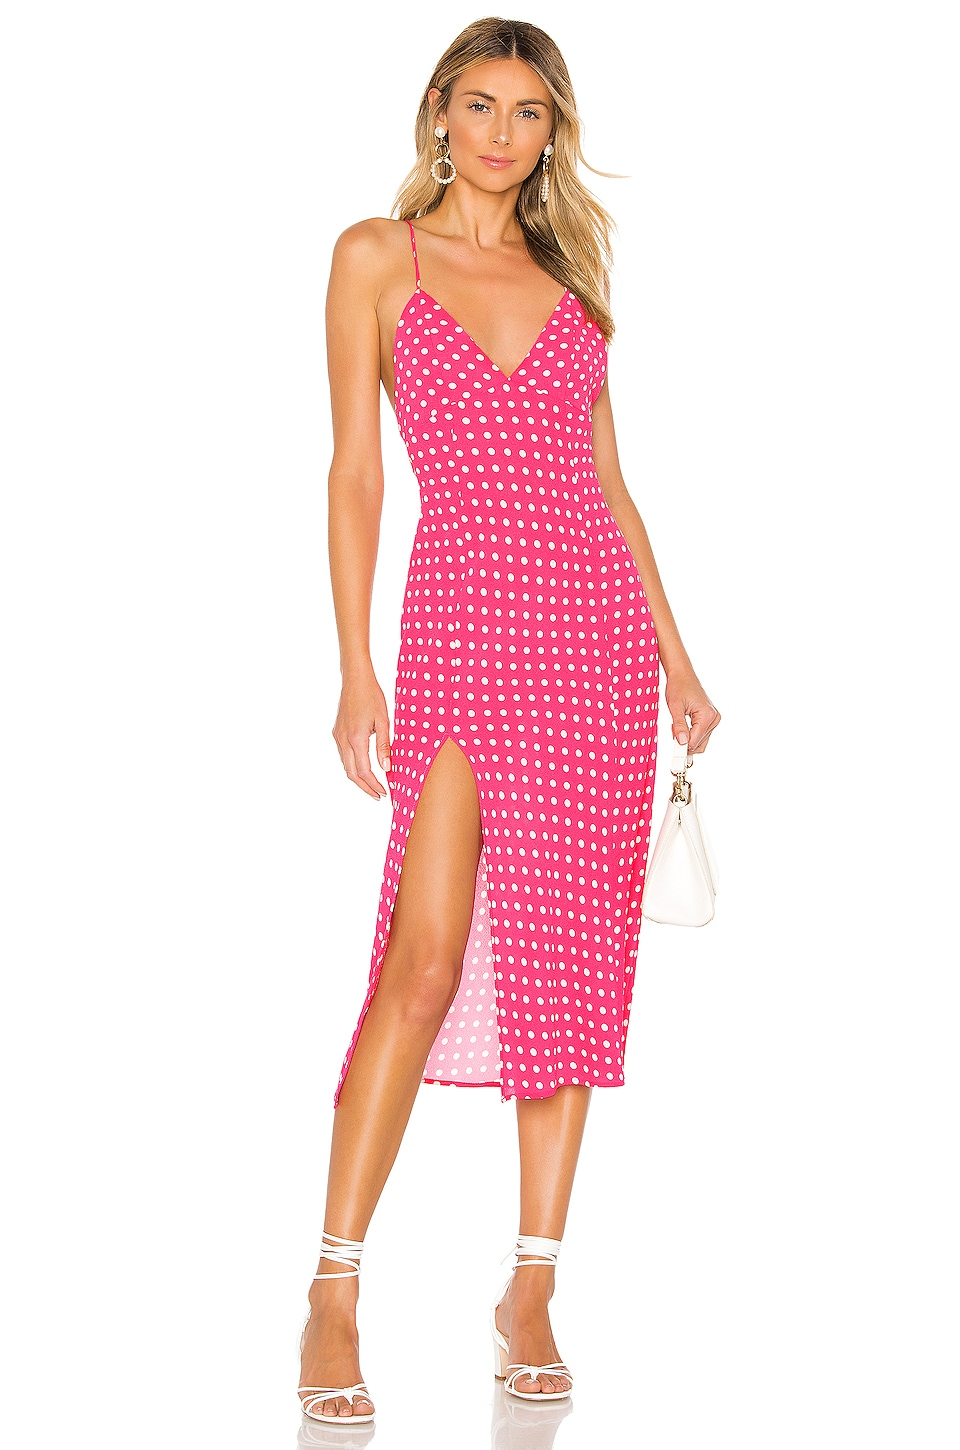 Endless Summer Harper Slip Dress in Hot Pink & White Polka Dot